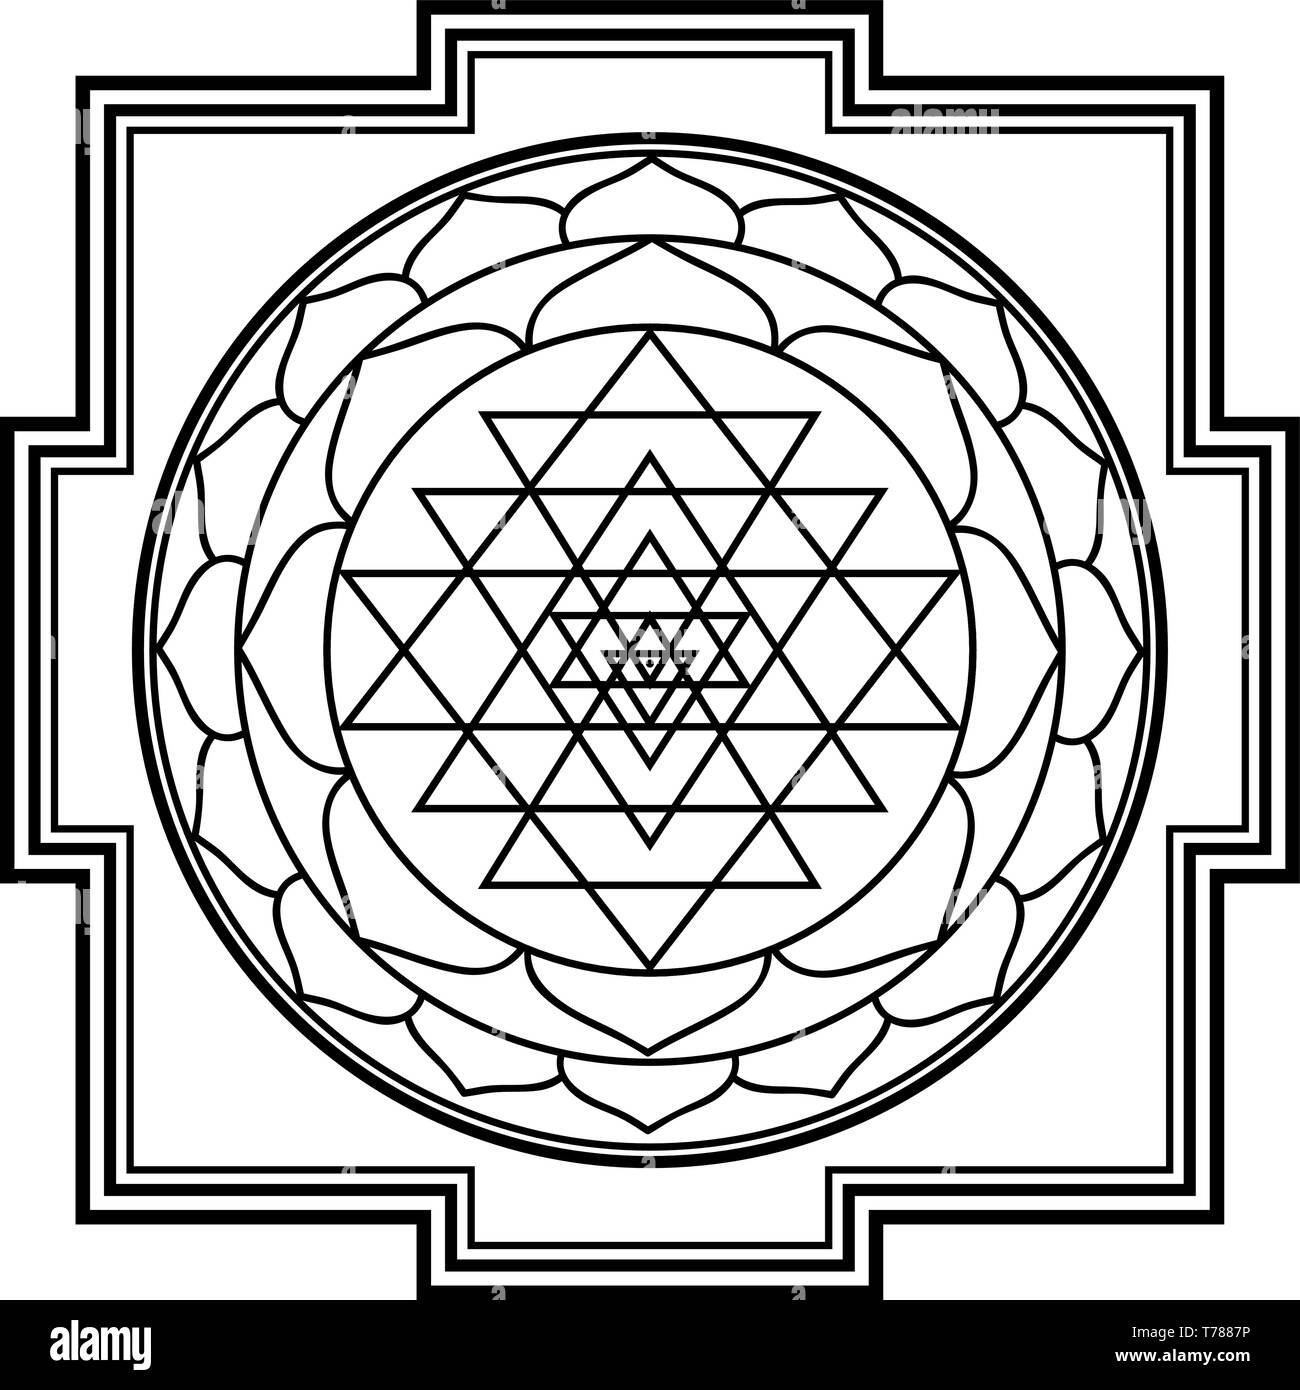 Sriyantra Stock Photos & Sriyantra Stock Images - Alamy